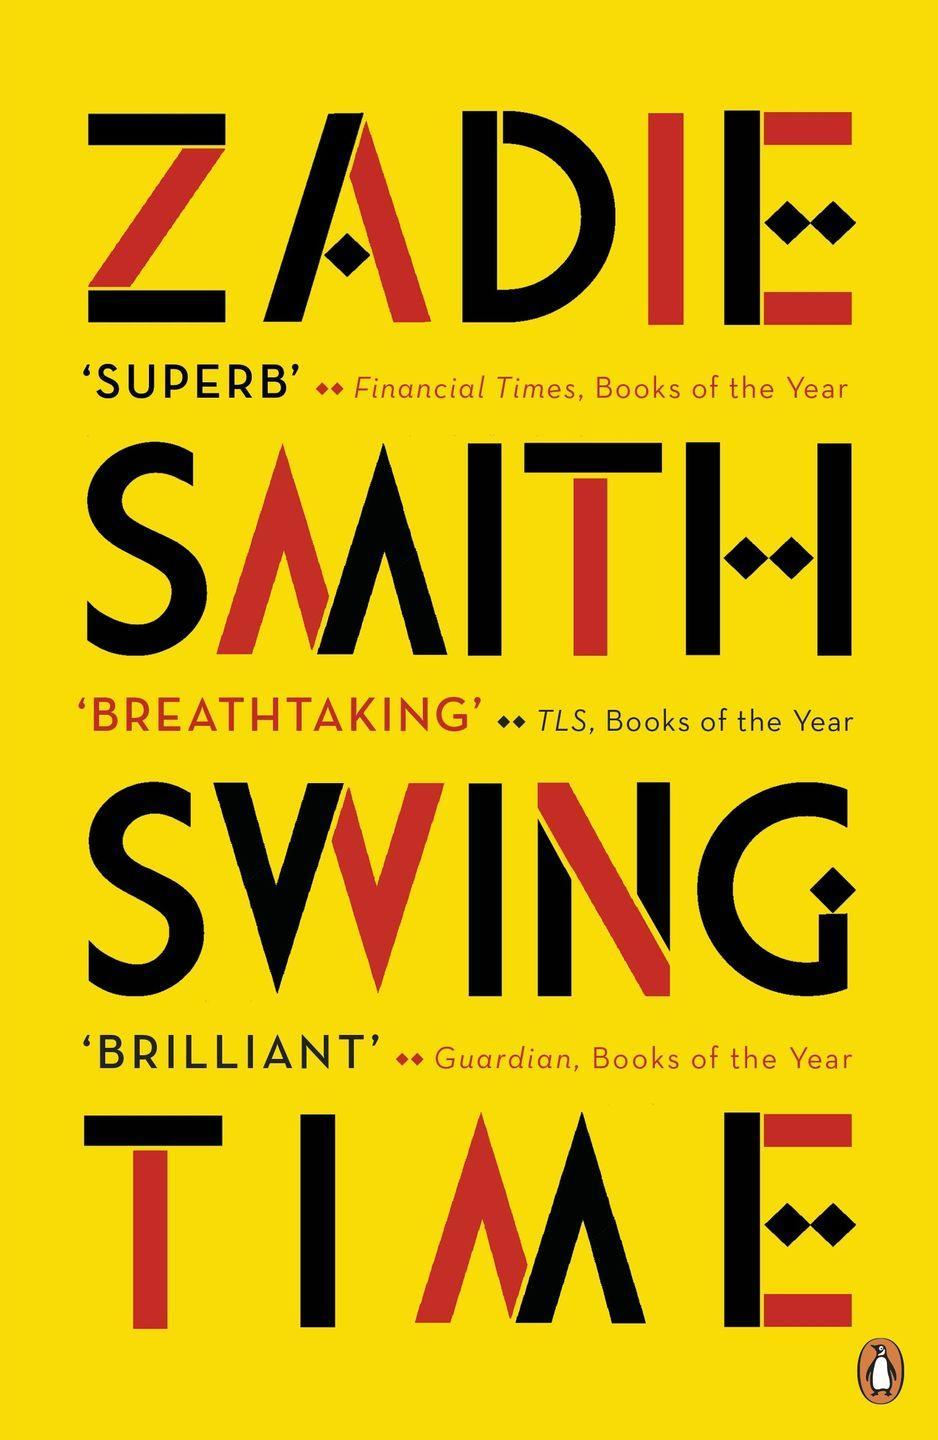 """<p>Smith's fifth novel is a love letter to tap dance, old-school musicals and childhood friendships while exploring the dividing lines of class, race, time and fame. Spinning between North London, New York and Africa, it is both a joyous and heart-breaking distraction from your 2021 holiday.</p><p><a class=""""link rapid-noclick-resp"""" href=""""https://www.amazon.co.uk/Swing-Time-LONGLISTED-Booker-Prize/dp/0141036605/ref=asc_df_0141036605/?tag=hearstuk-yahoo-21&linkCode=df0&hvadid=310873579562&hvnetw=g&hvrand=16189523322864660852&hvdev=c&hvlocphy=1006886&hvtargid=pla-453081726422&psc=1&psc=1&th=1&ascsubtag=%5Bartid%7C1927.g.36697675%5Bsrc%7Cyahoo-uk"""" rel=""""nofollow noopener"""" target=""""_blank"""" data-ylk=""""slk:SHOP NOW"""">SHOP NOW</a></p>"""